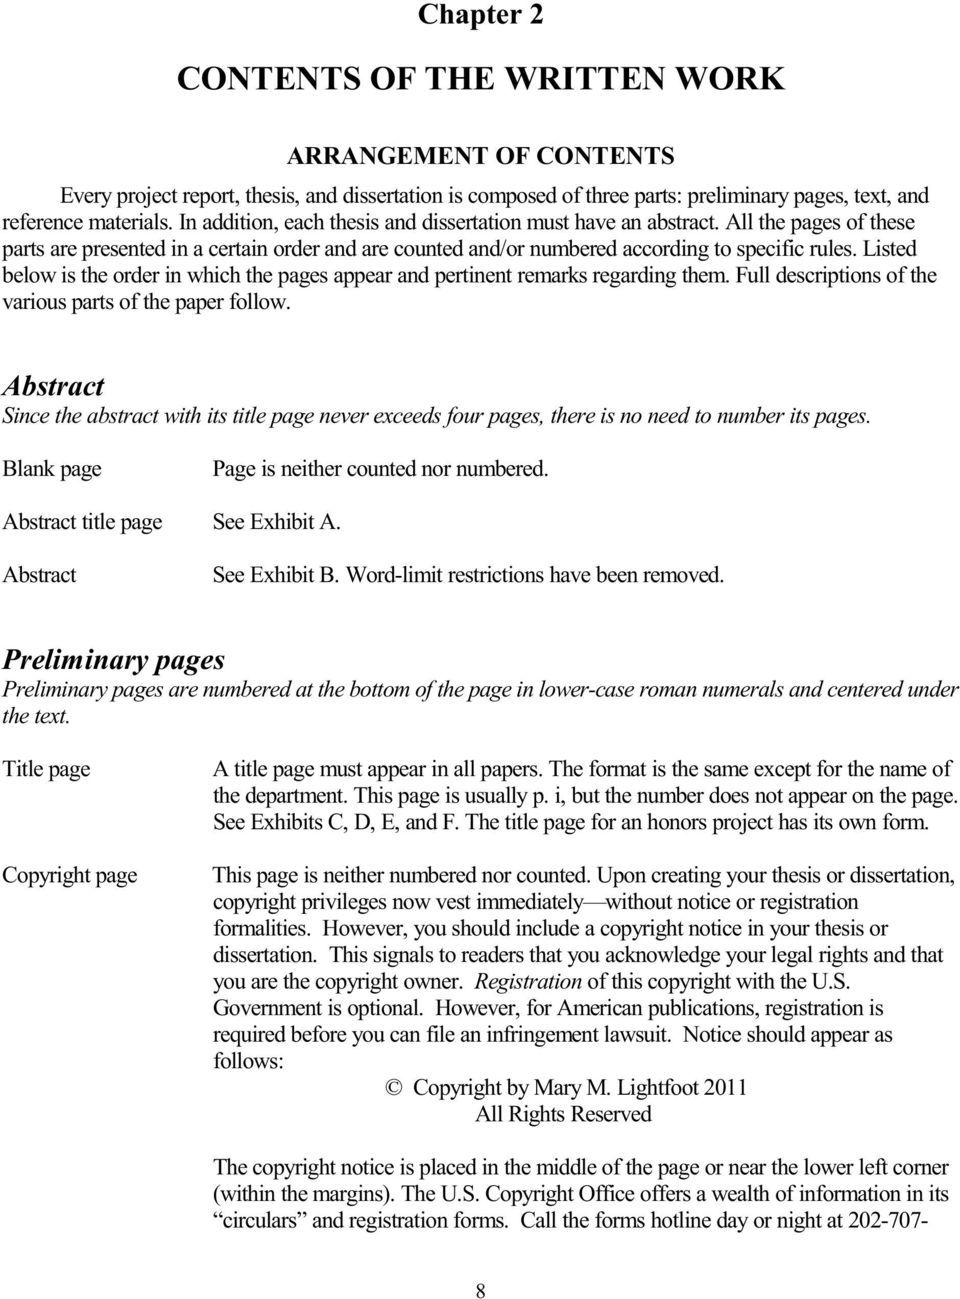 Paper Quality For Dissertation Vision Professional Text Copyright